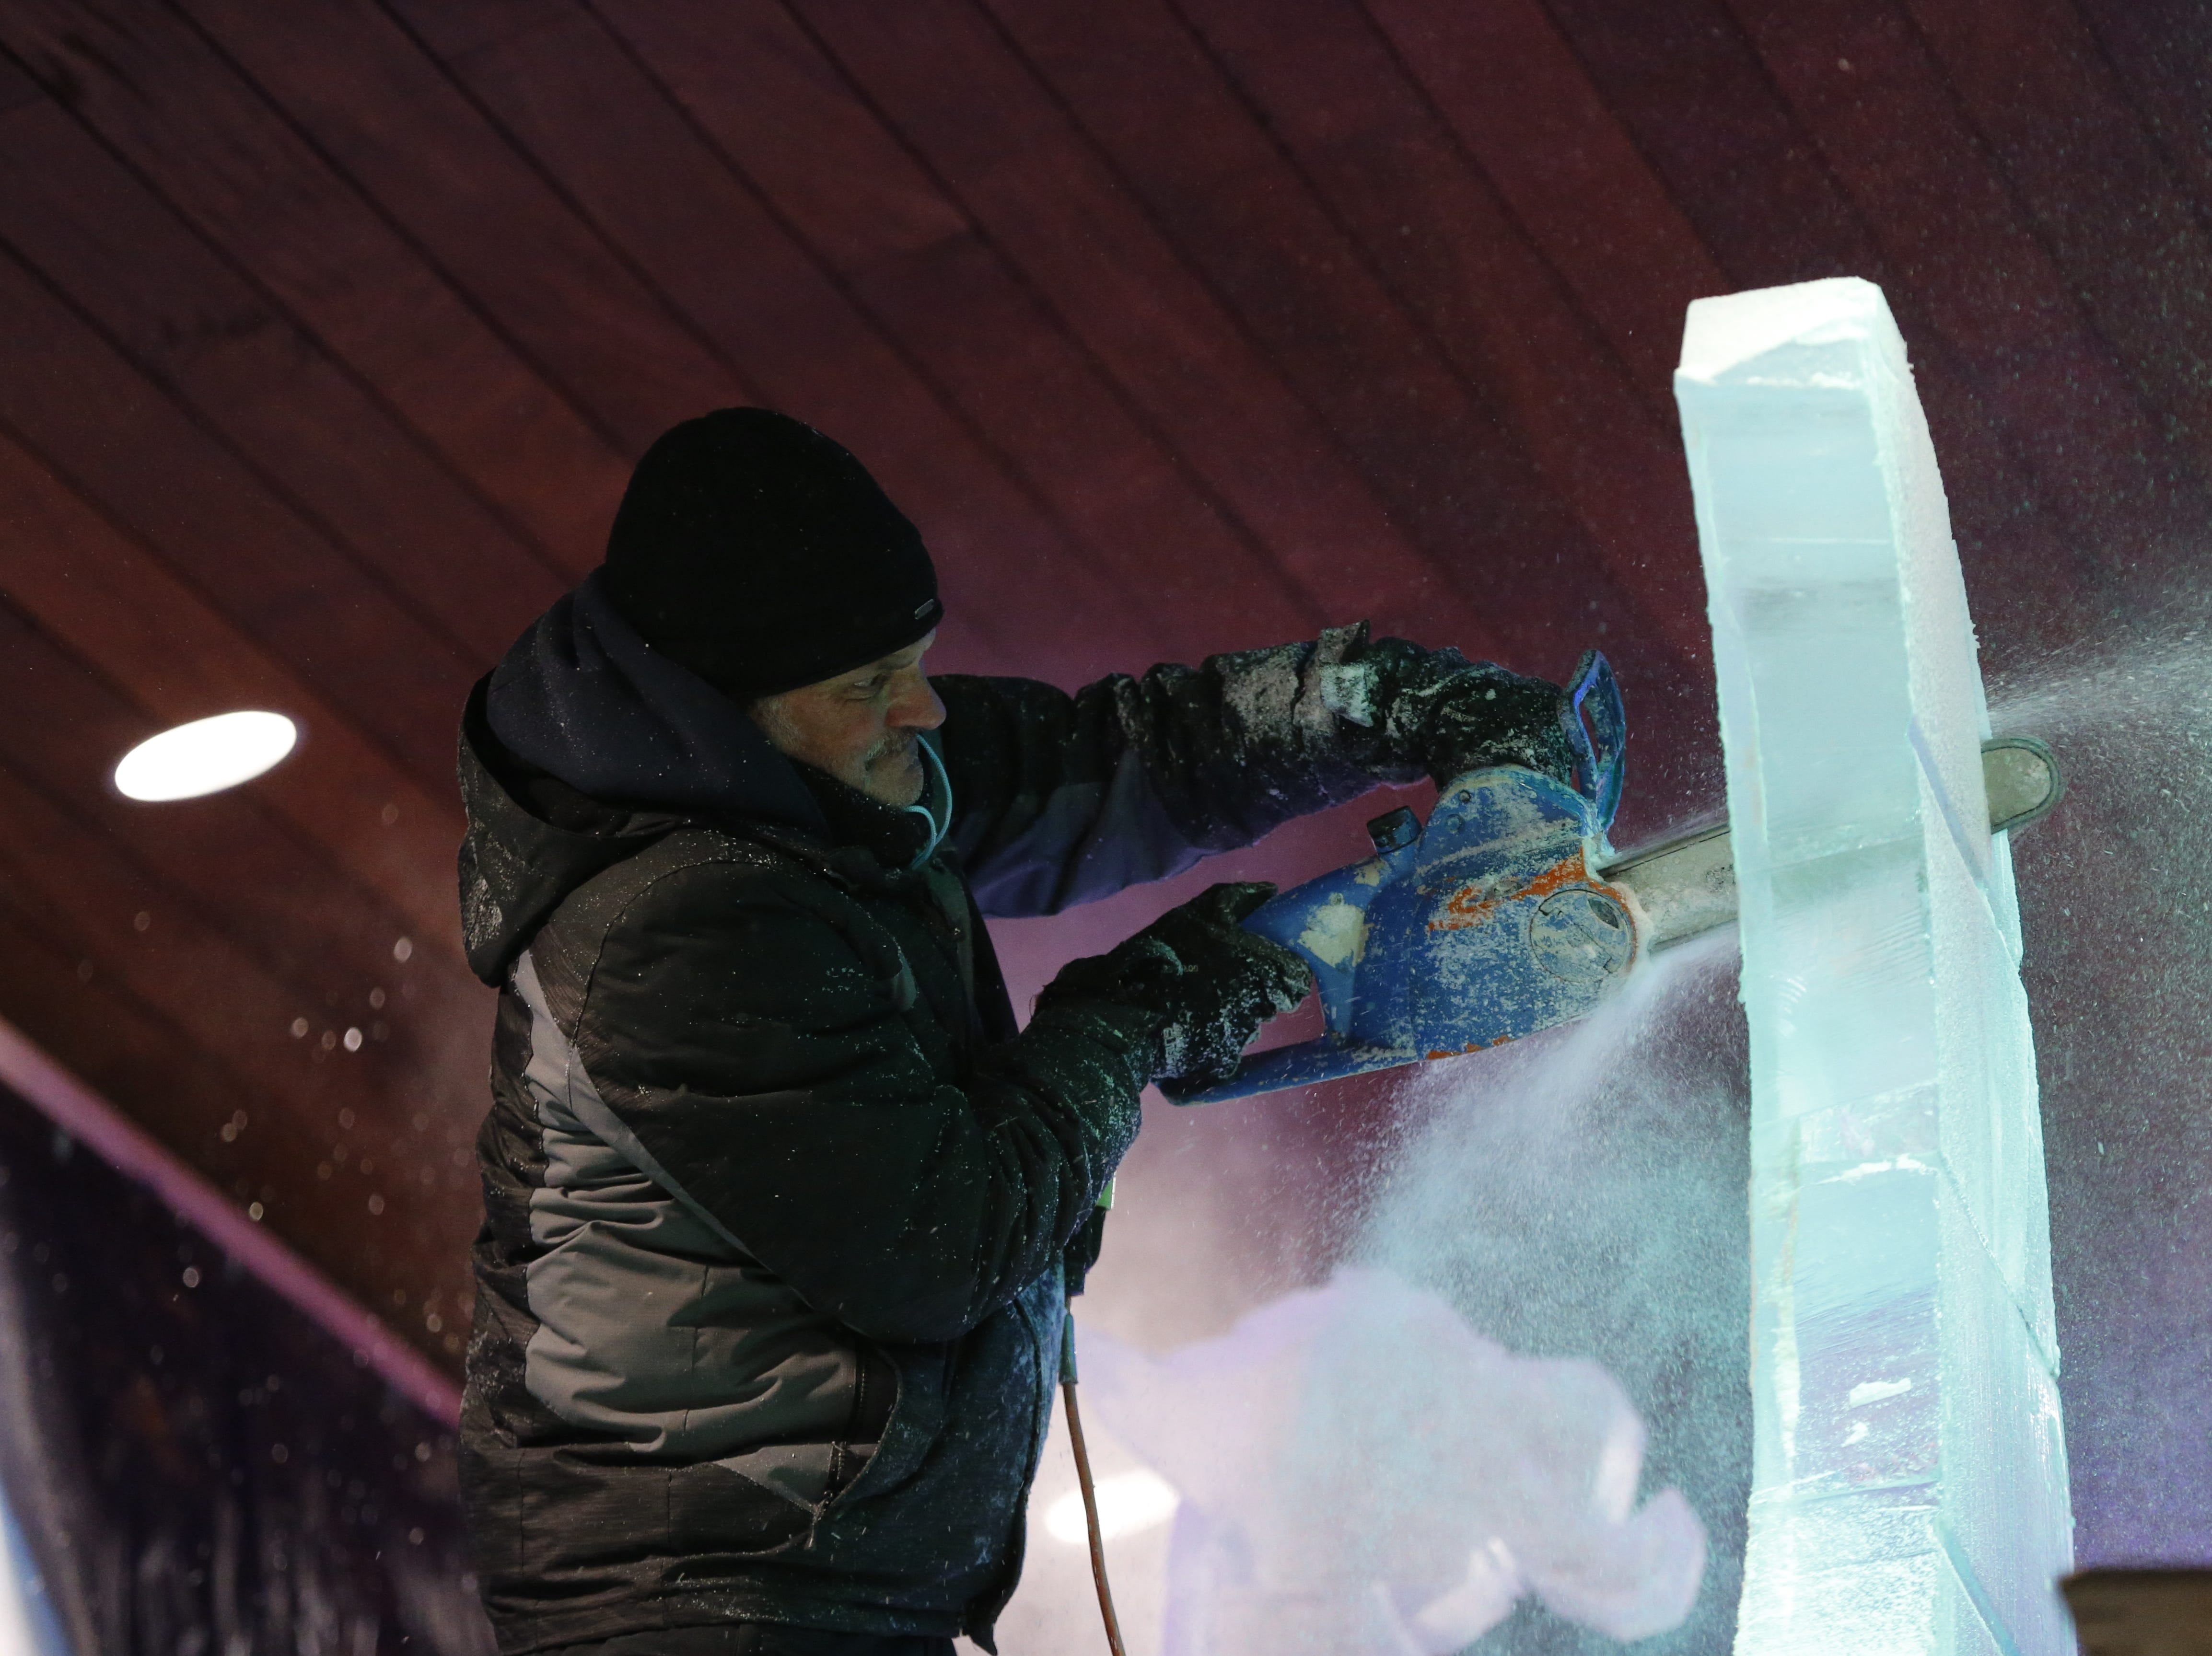 """Snow flies as a chainsaw makes quick work of a block of ice during the Meltdown Winter Ice Festival's """"Big Reveal"""" event on Friday."""